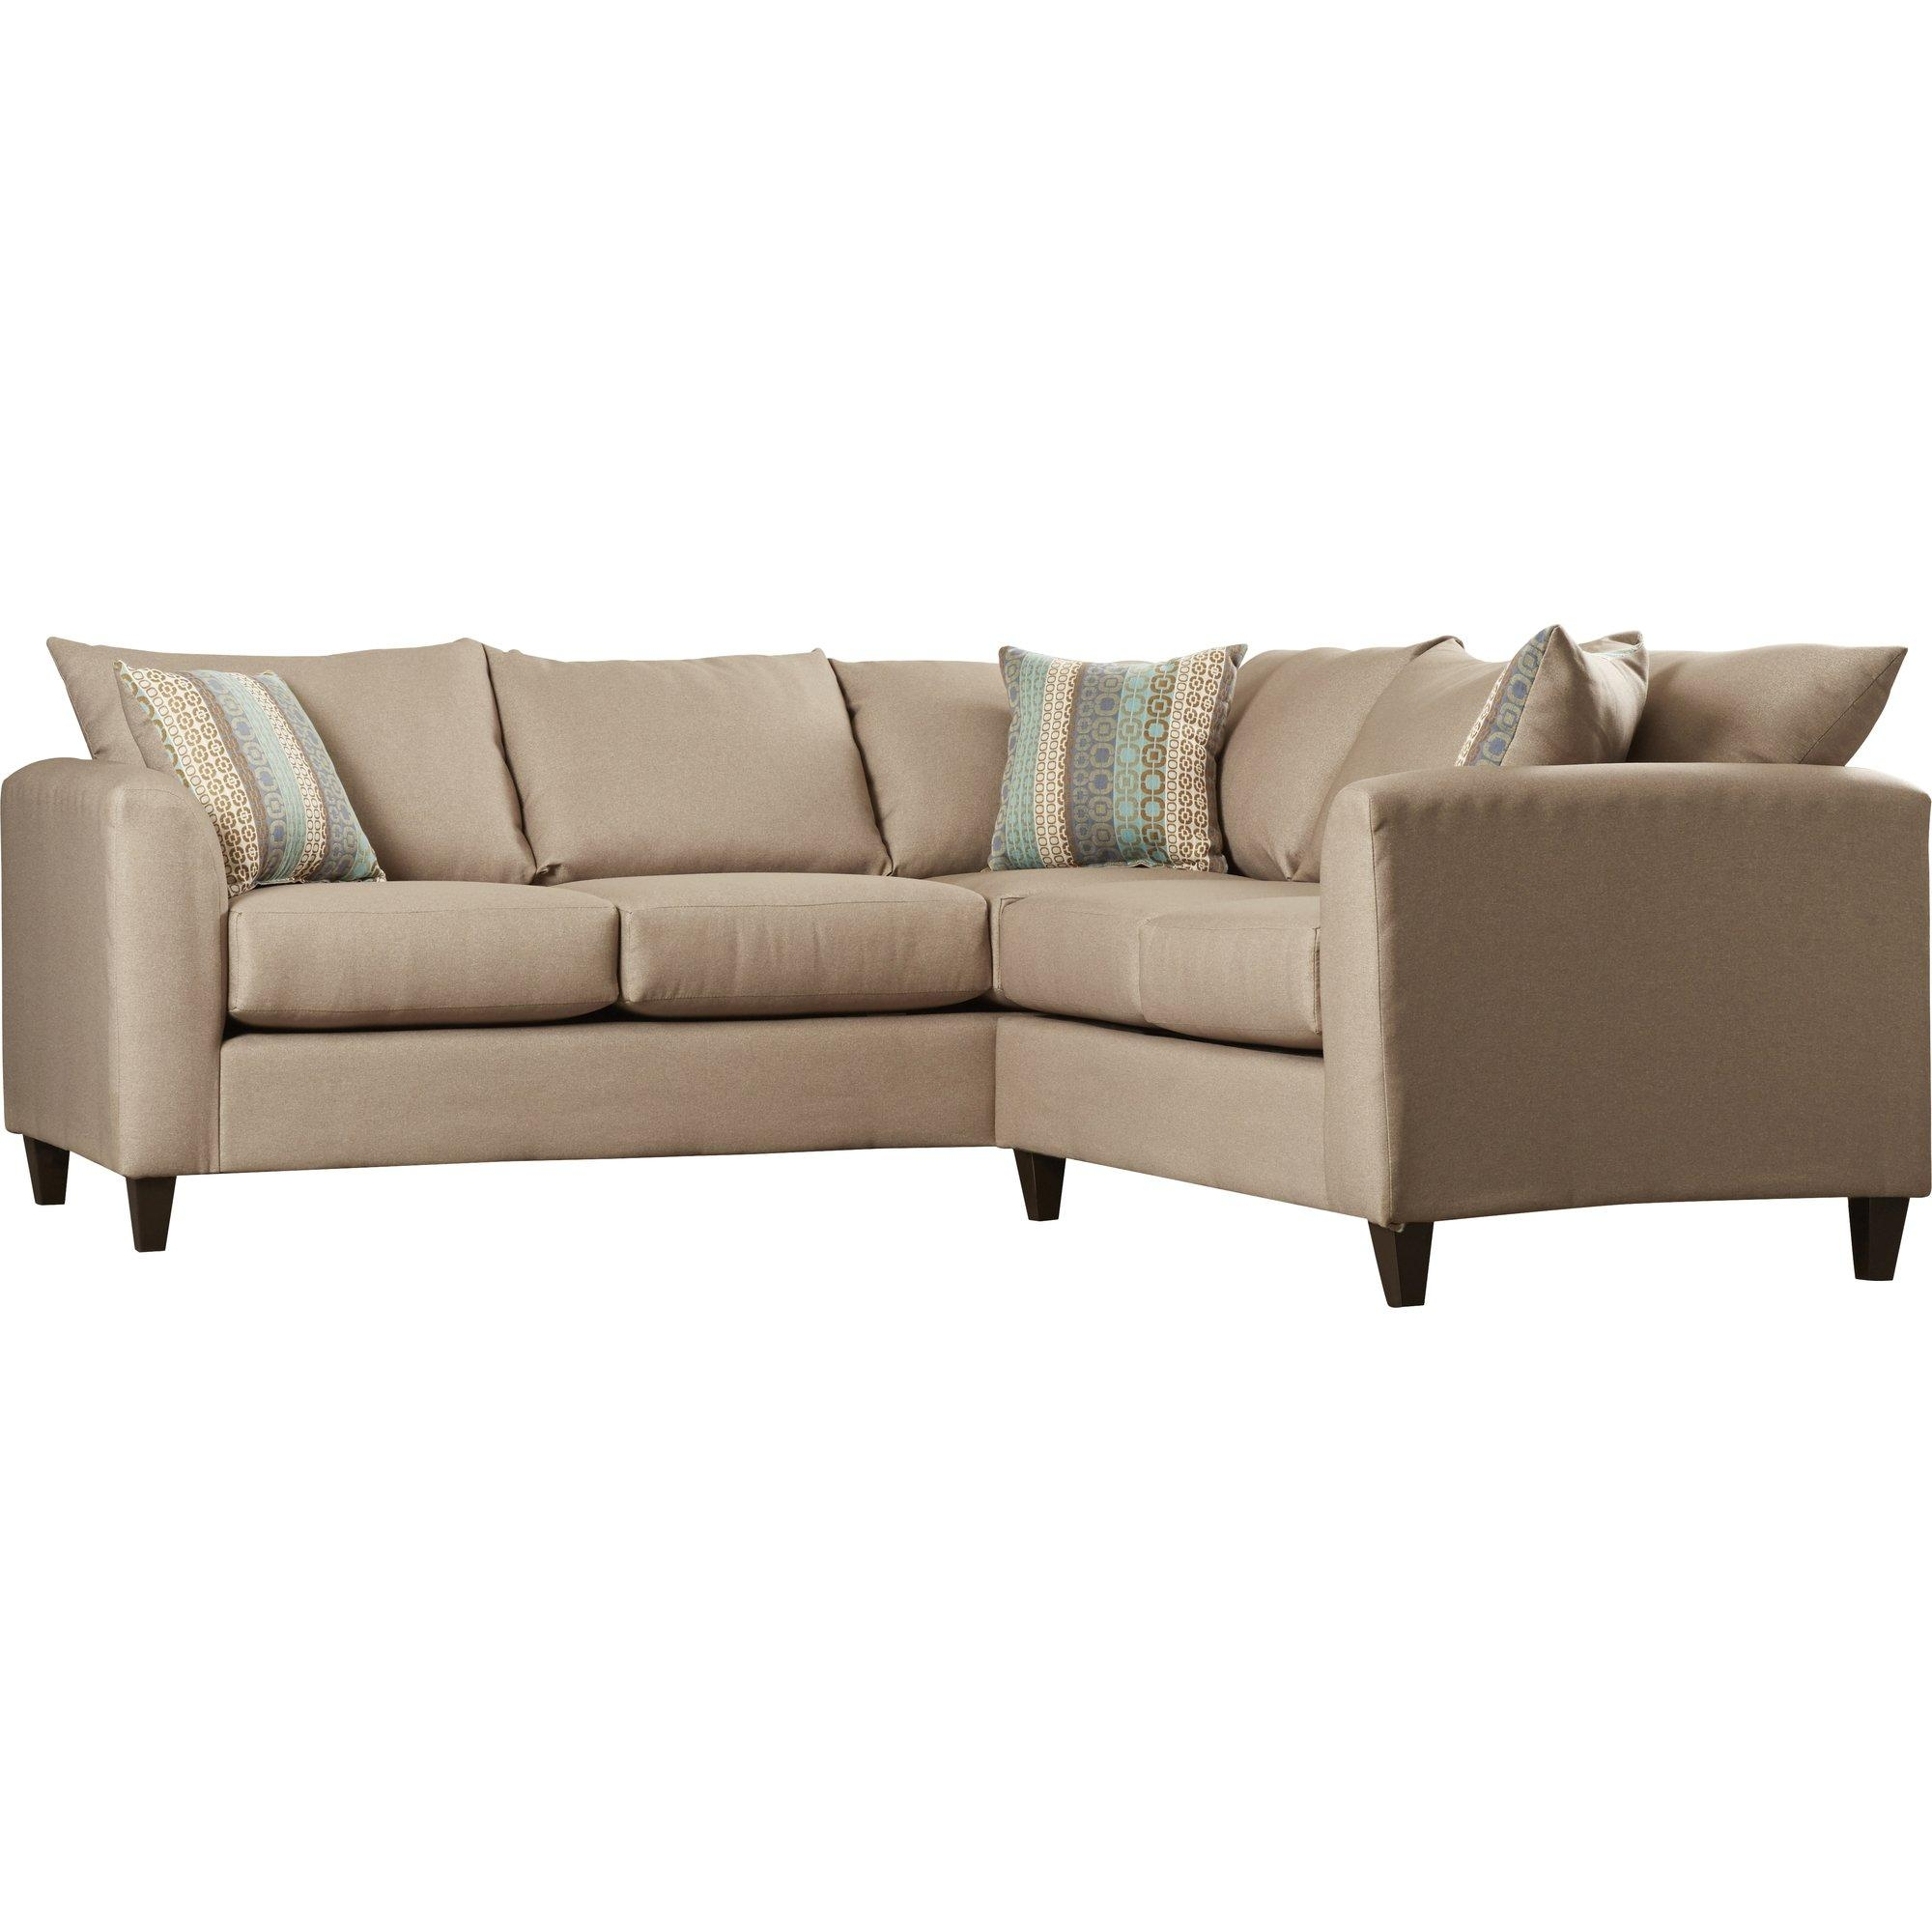 Beachcrest Home Serta Sectional & Reviews | Wayfair Supply Throughout Serta Sectional (Image 6 of 20)